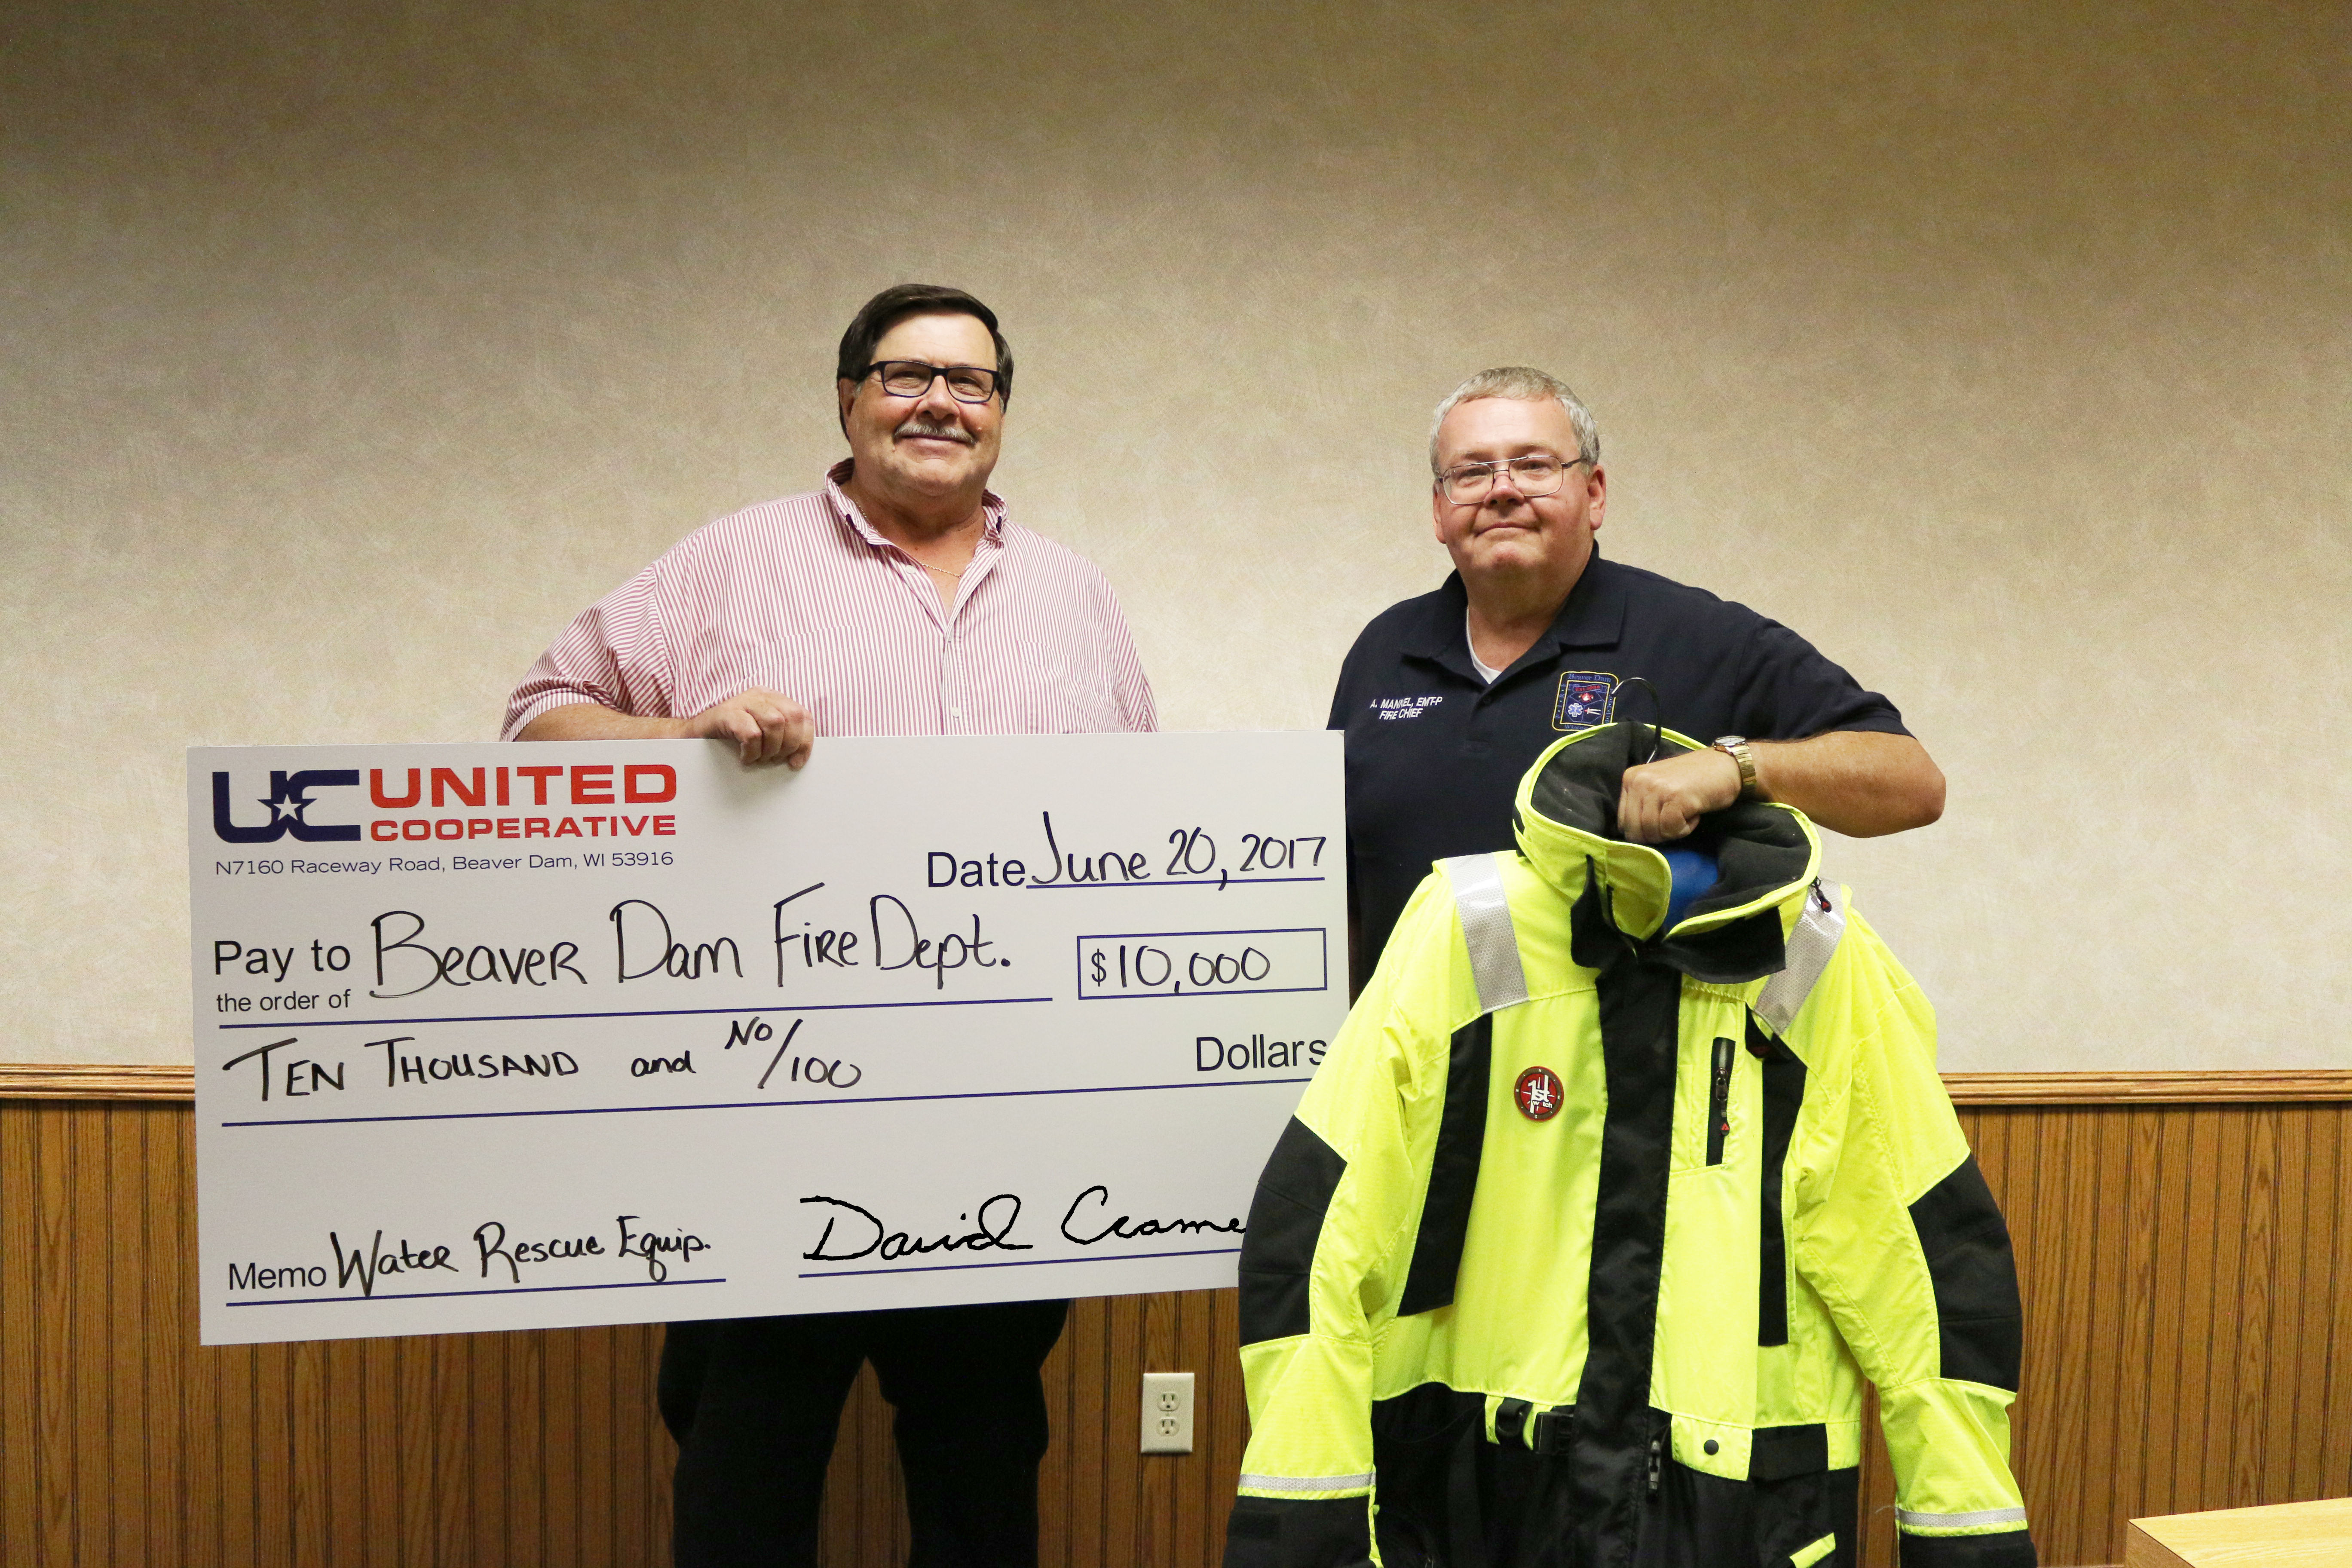 United Cooperative donates $10,000 to Beaver Dam Fire and Rescue